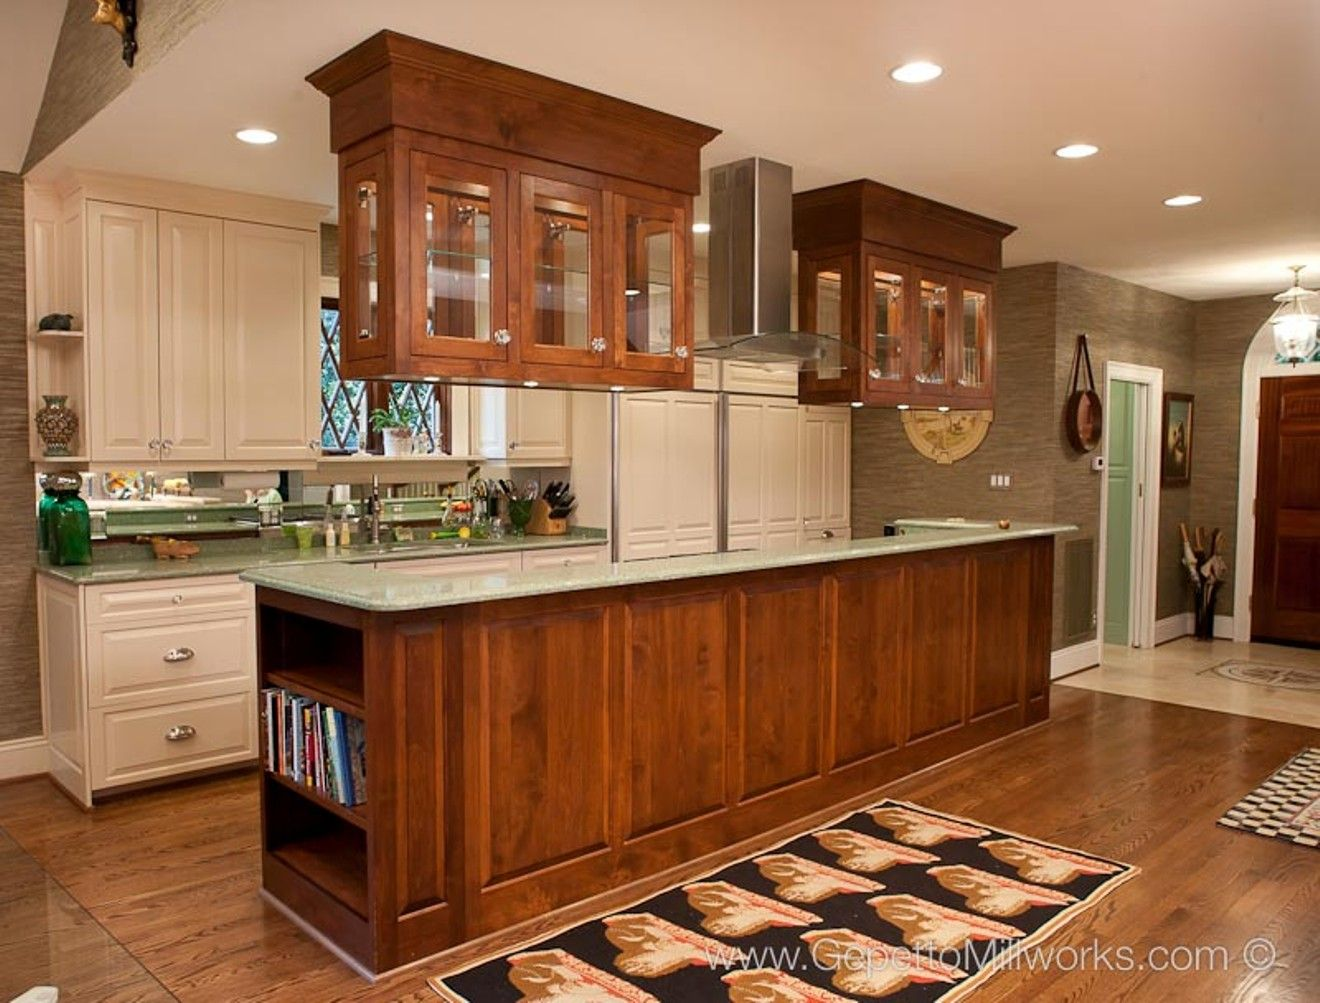 Kitchen Cabinet Hanging Hanging Beds From Ceiling Decosee From Kitchen Hanging